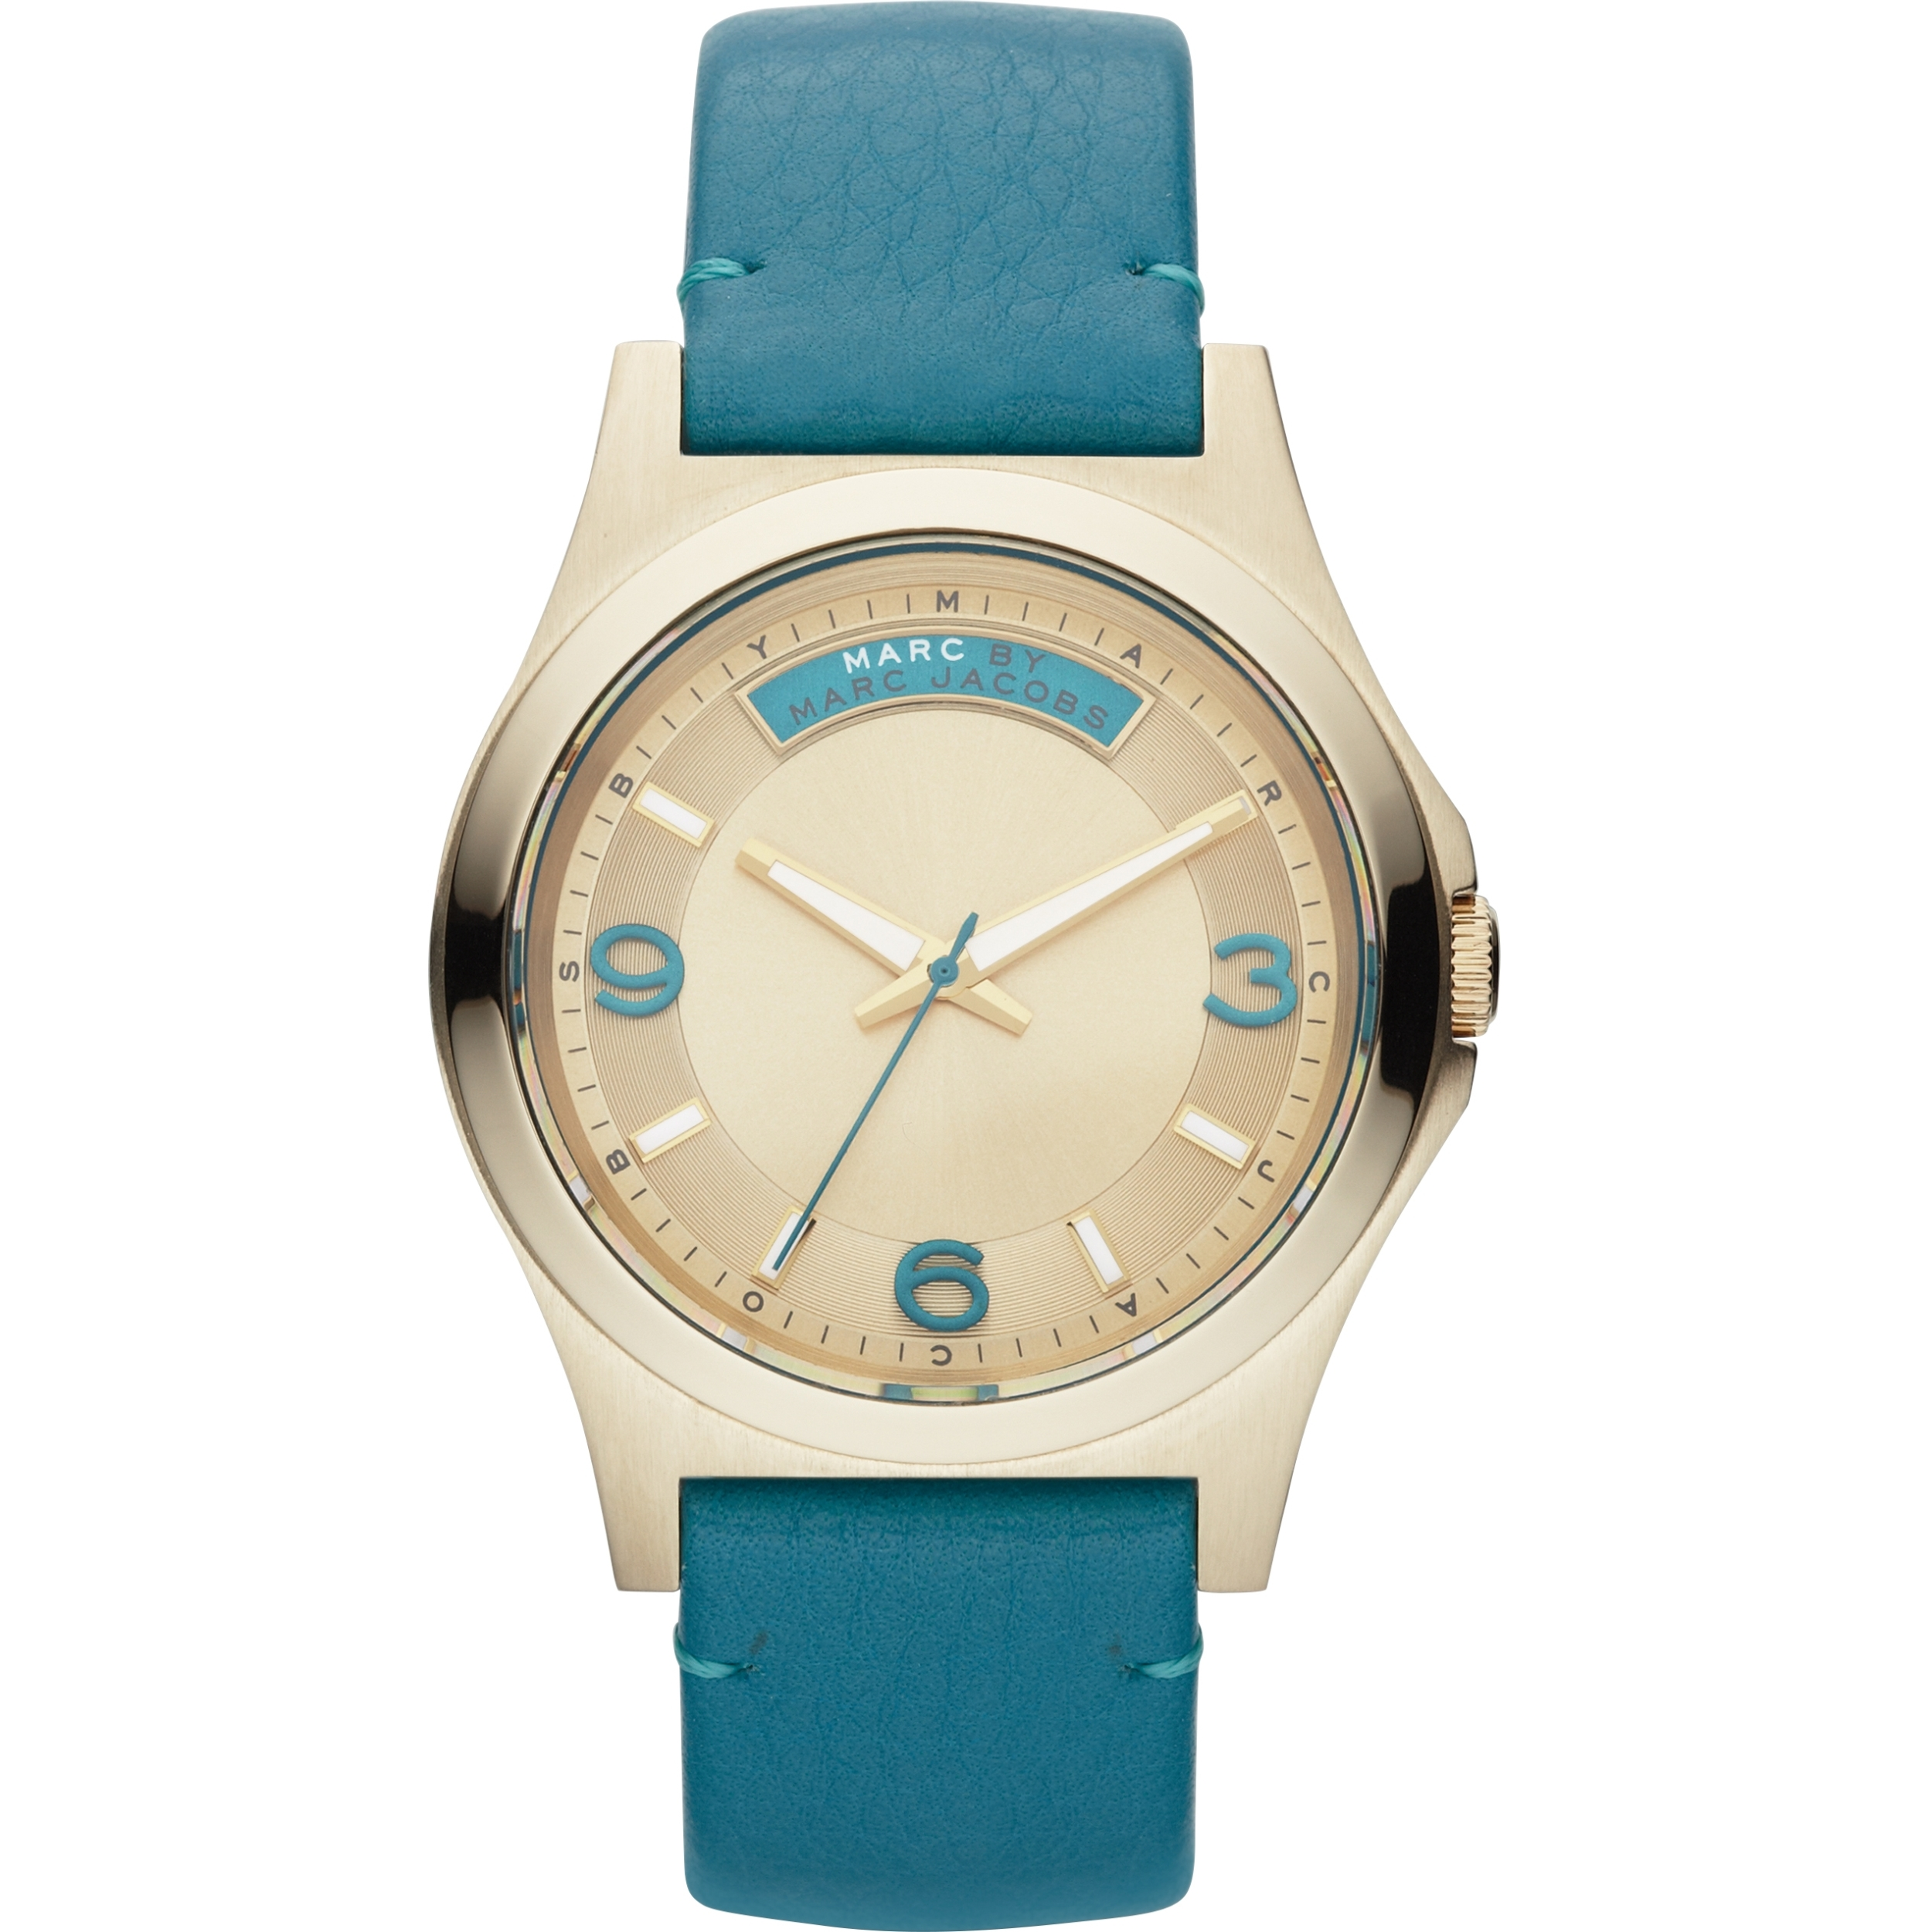 ecc56ef55 Ladies Marc Jacobs Baby Dave Watch (MBM1263) | WatchShop.com™